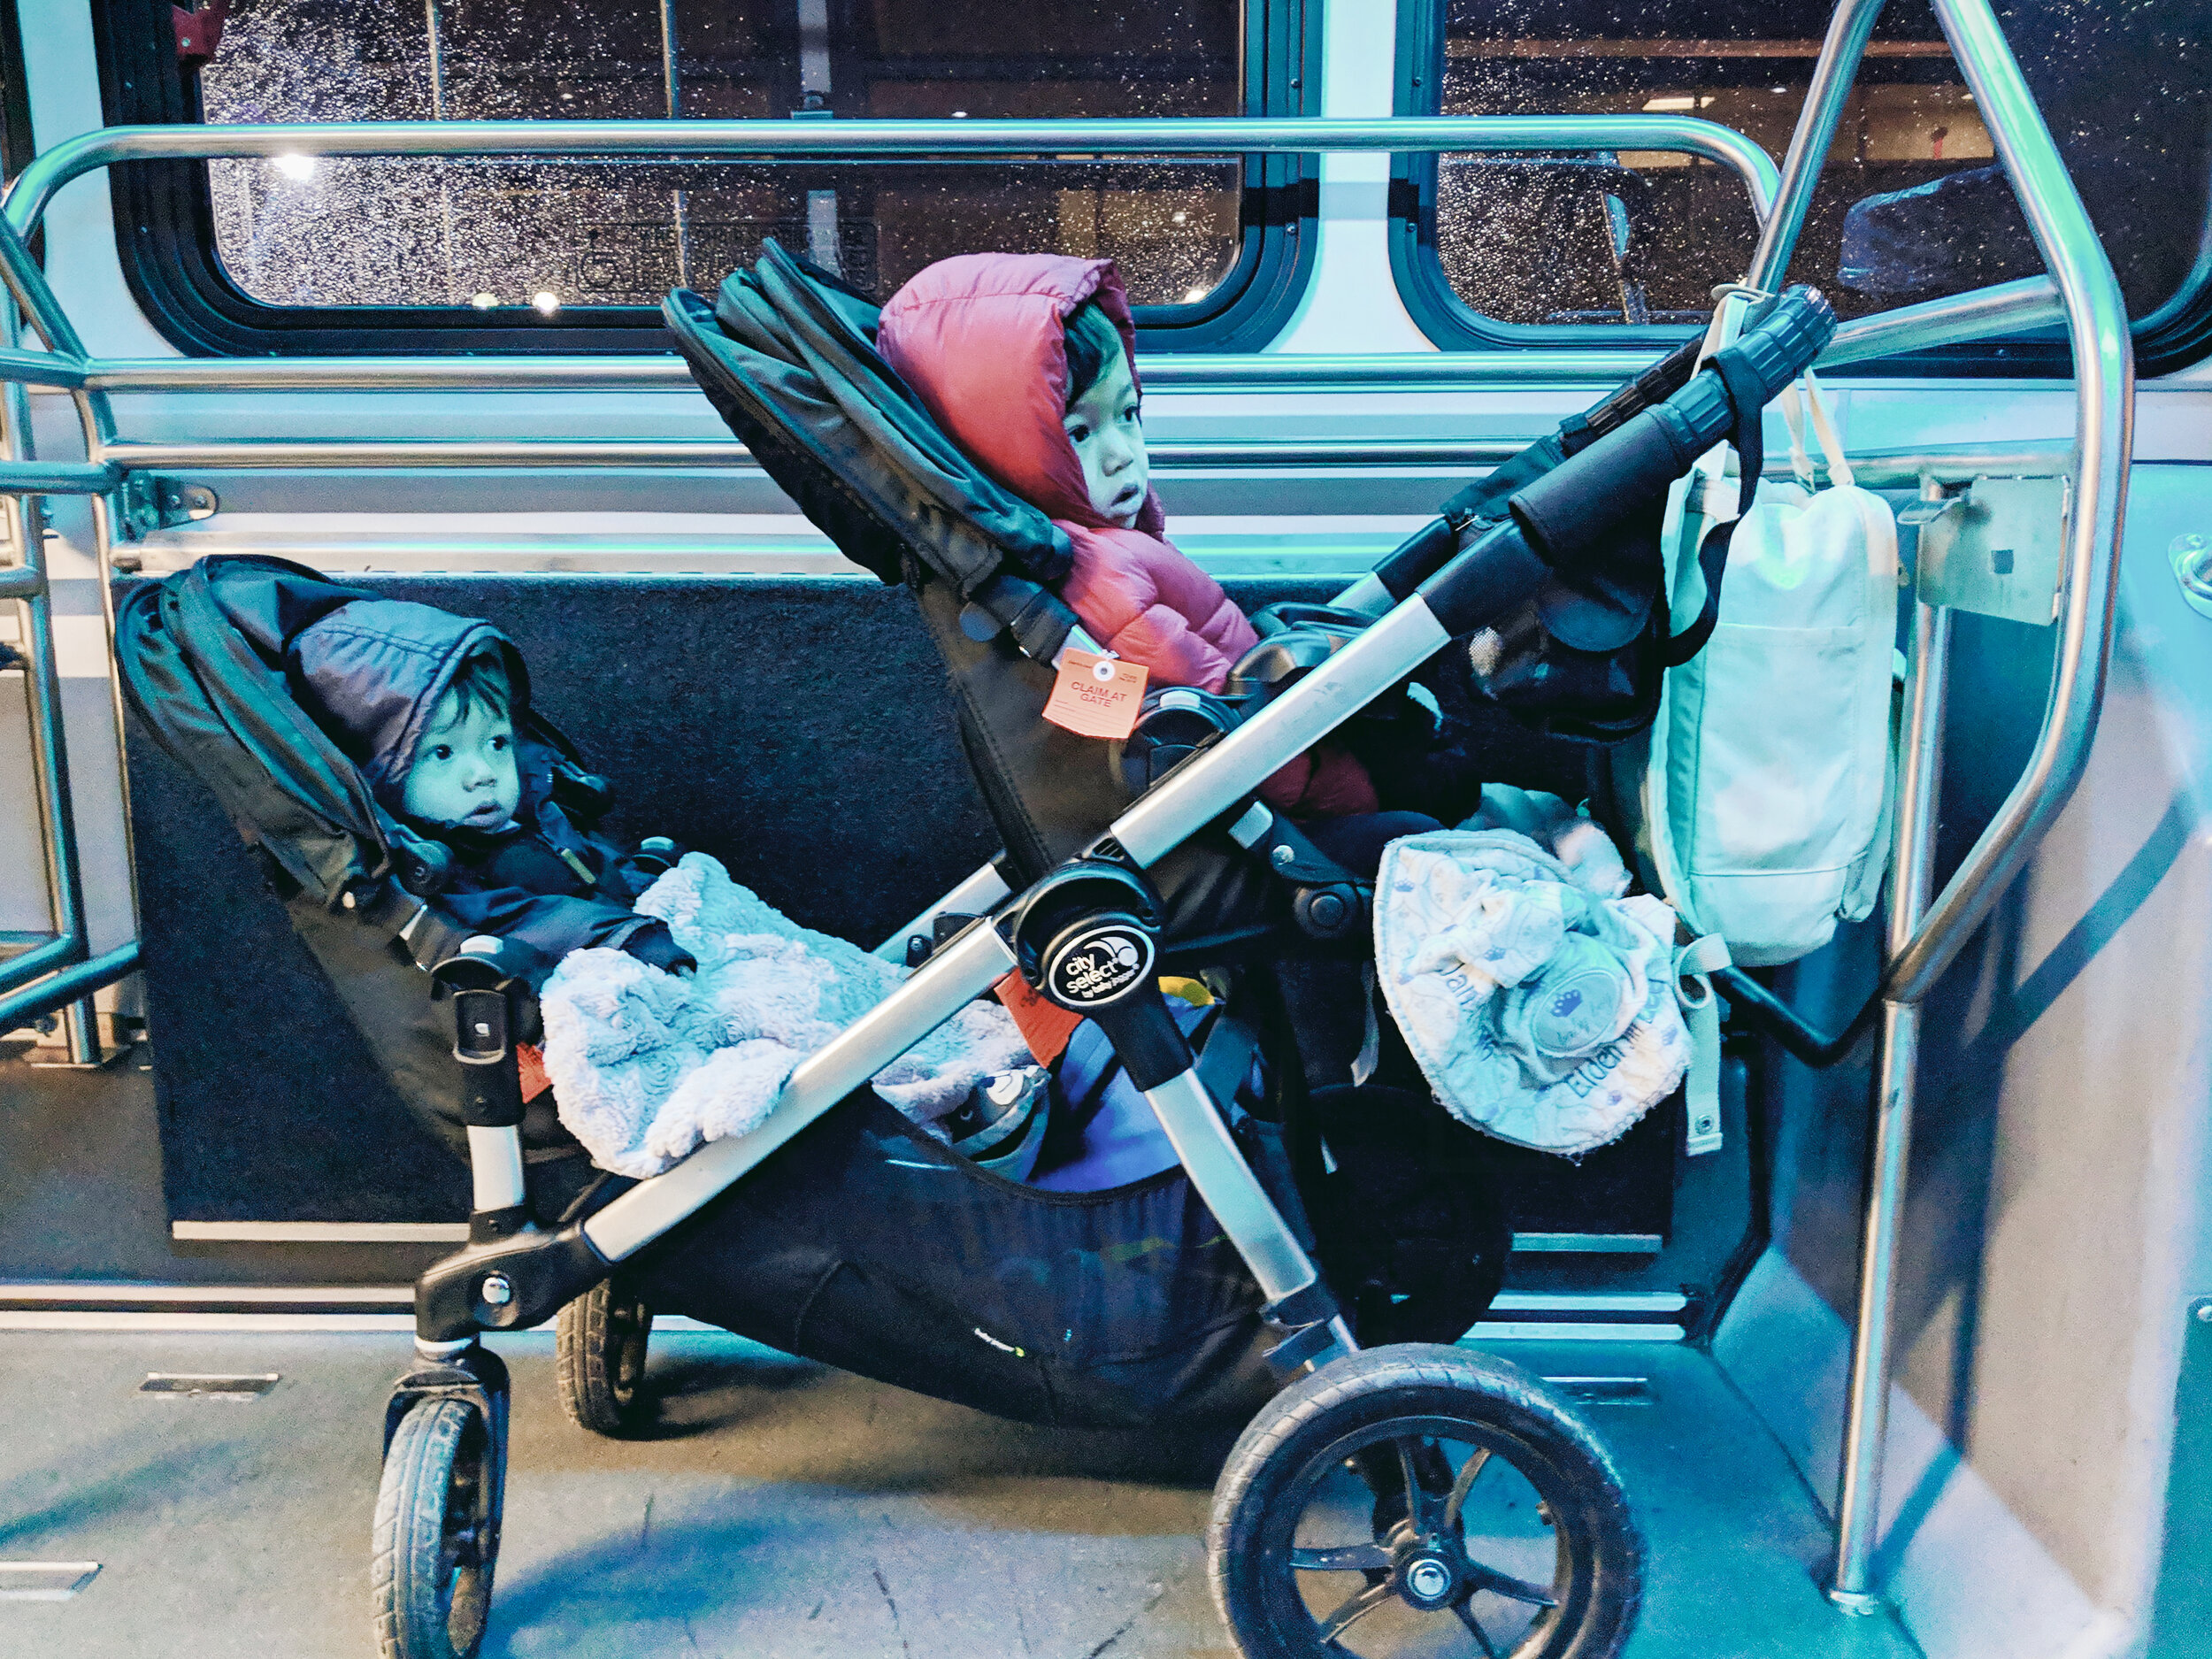 Double stroller on the airport shuttle from the parking garage to airport